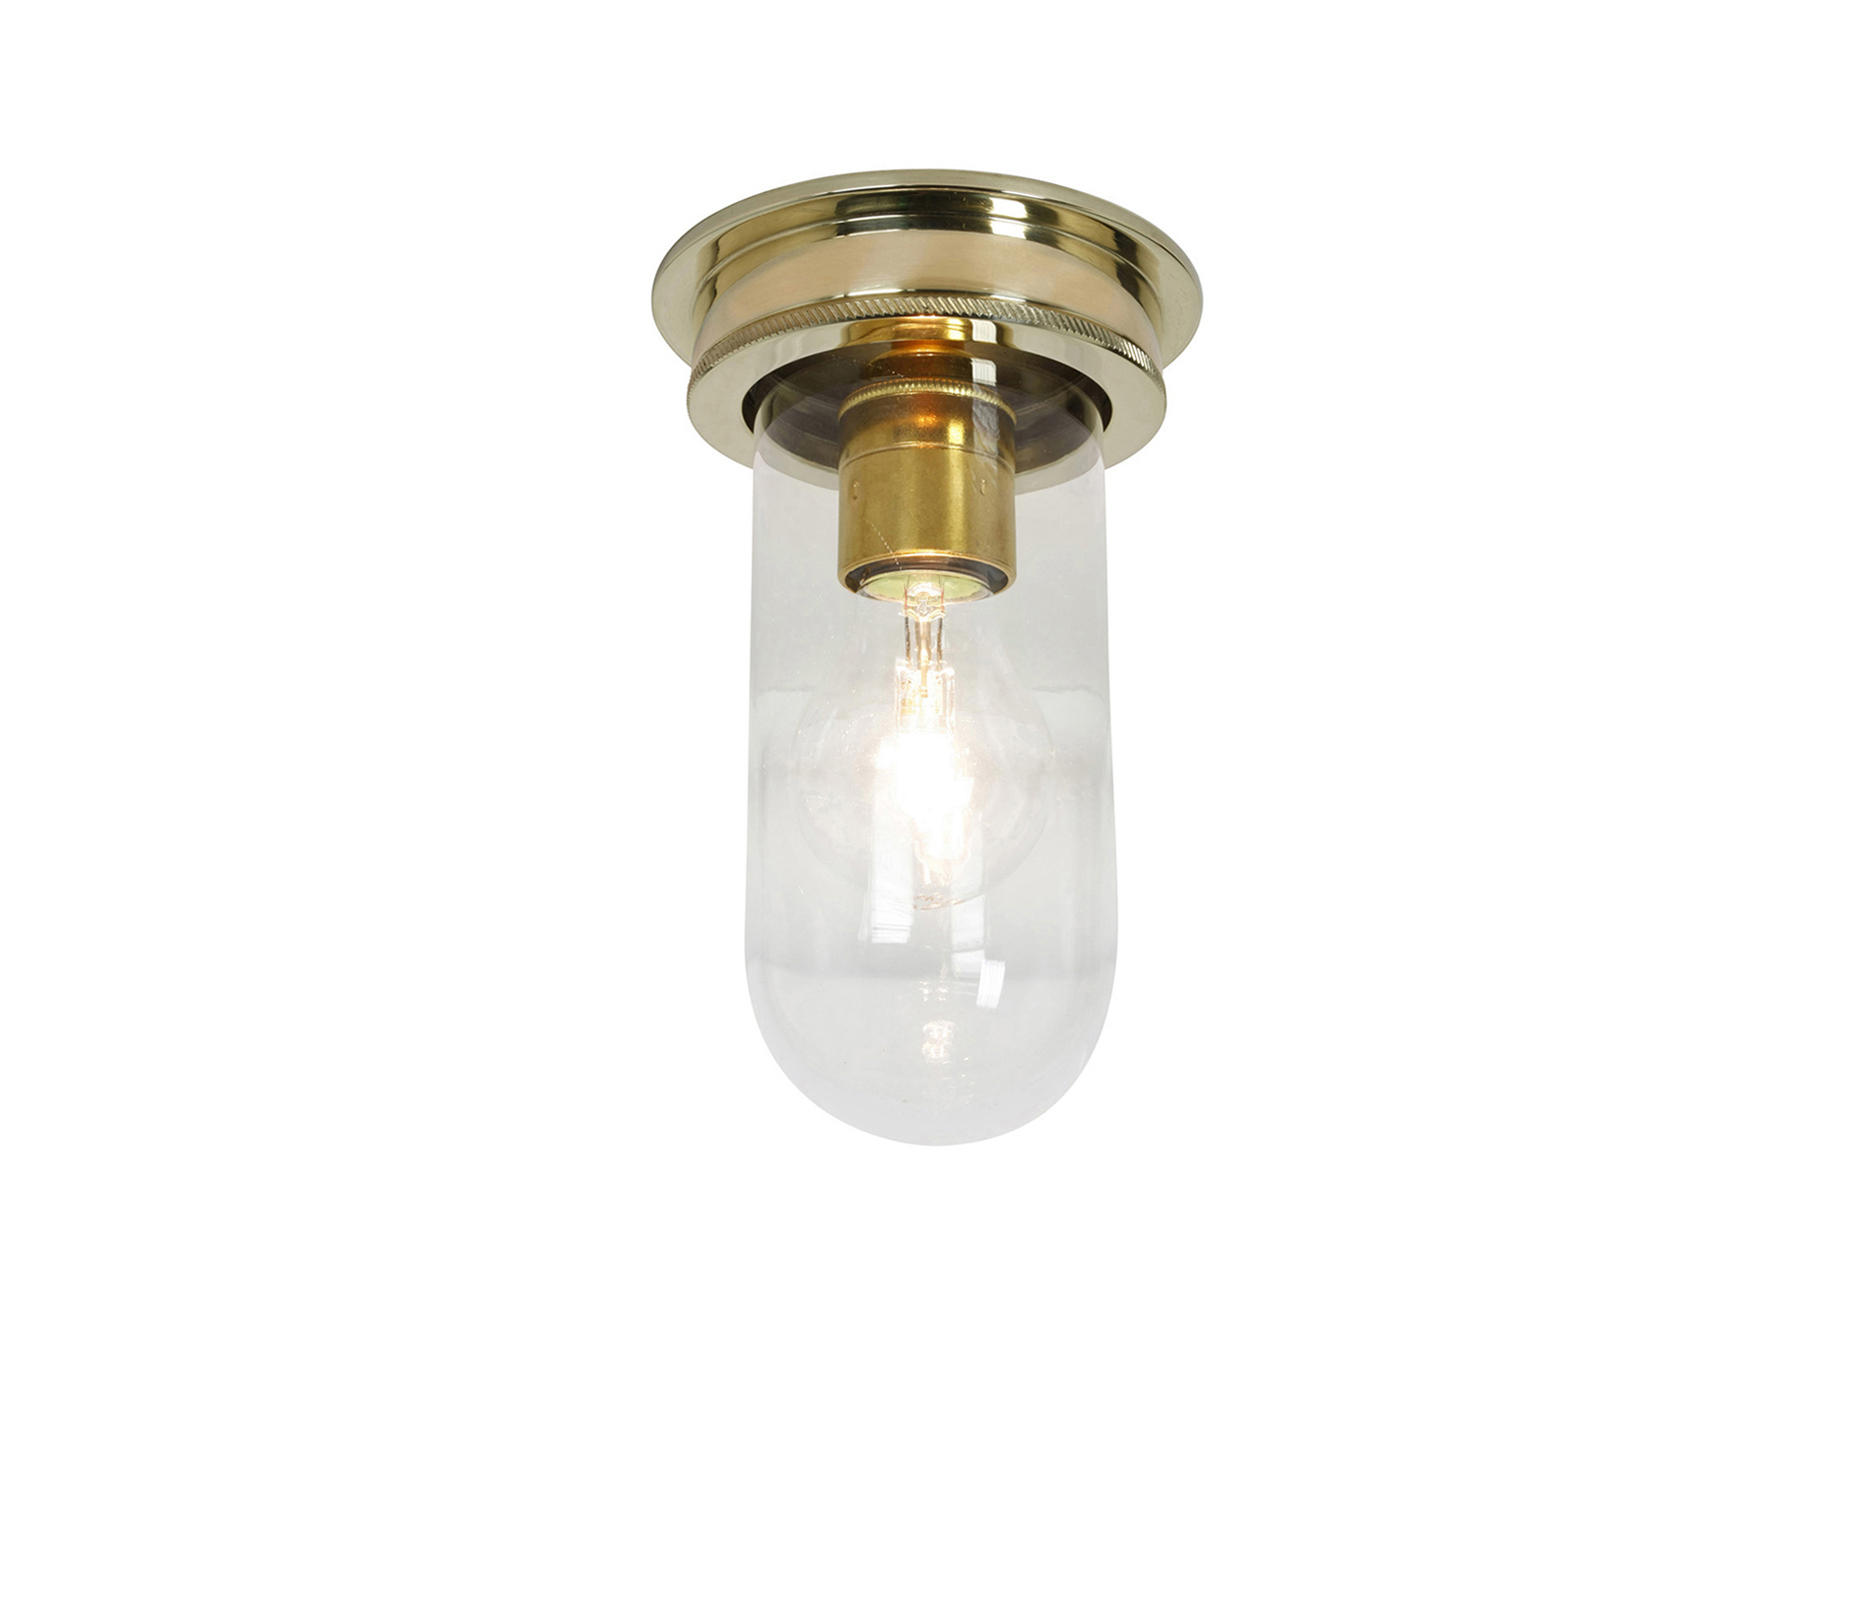 7202 Ship S Companionway Light Polished Br Clear Gl By Original Btc Ceiling Lights